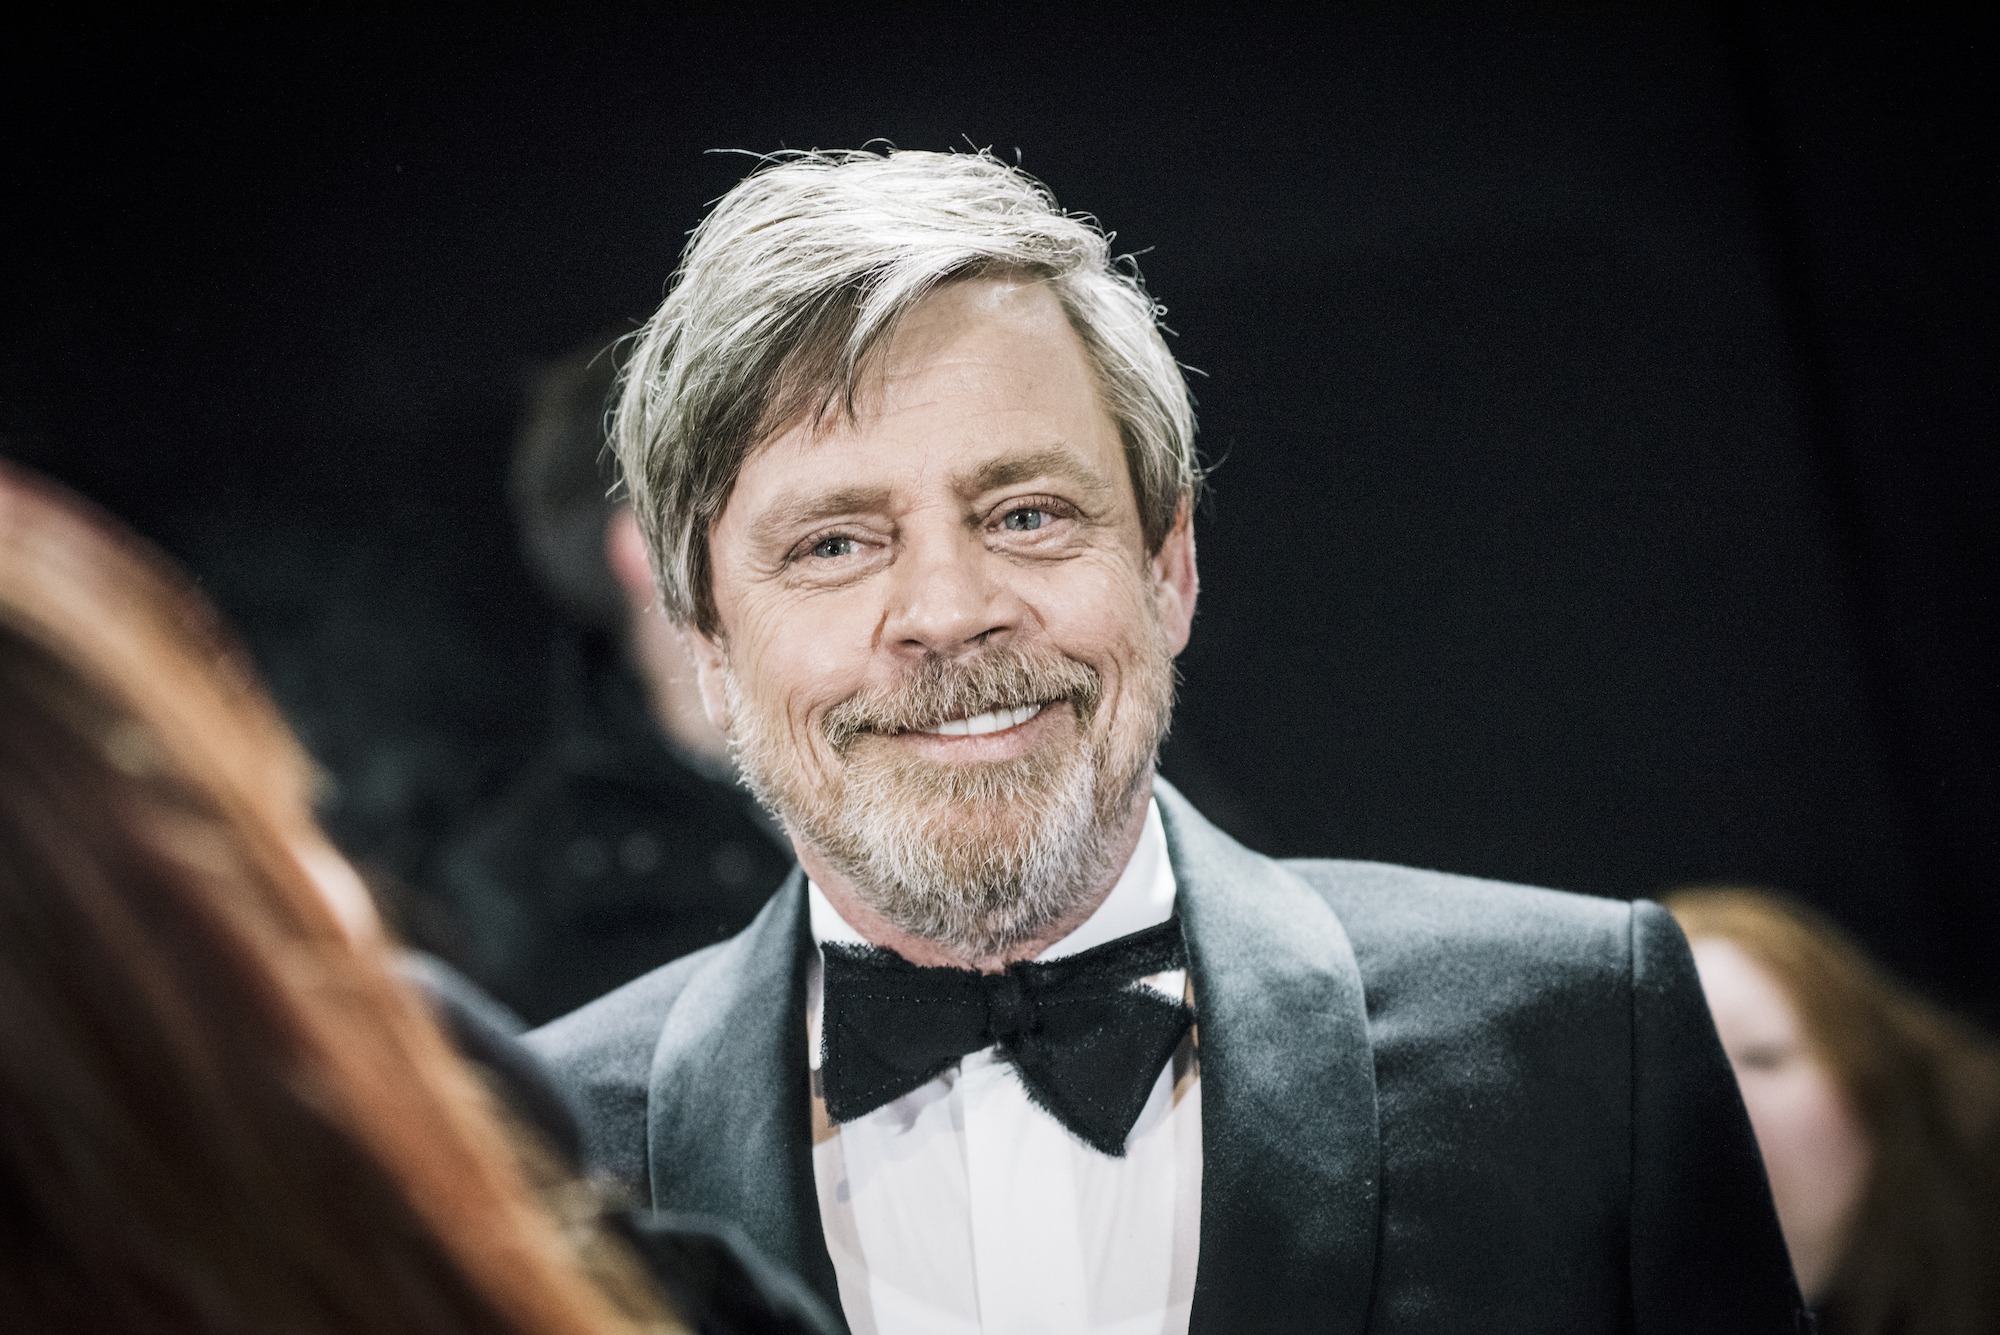 Mark Hamill smiling, with suit and bowtie